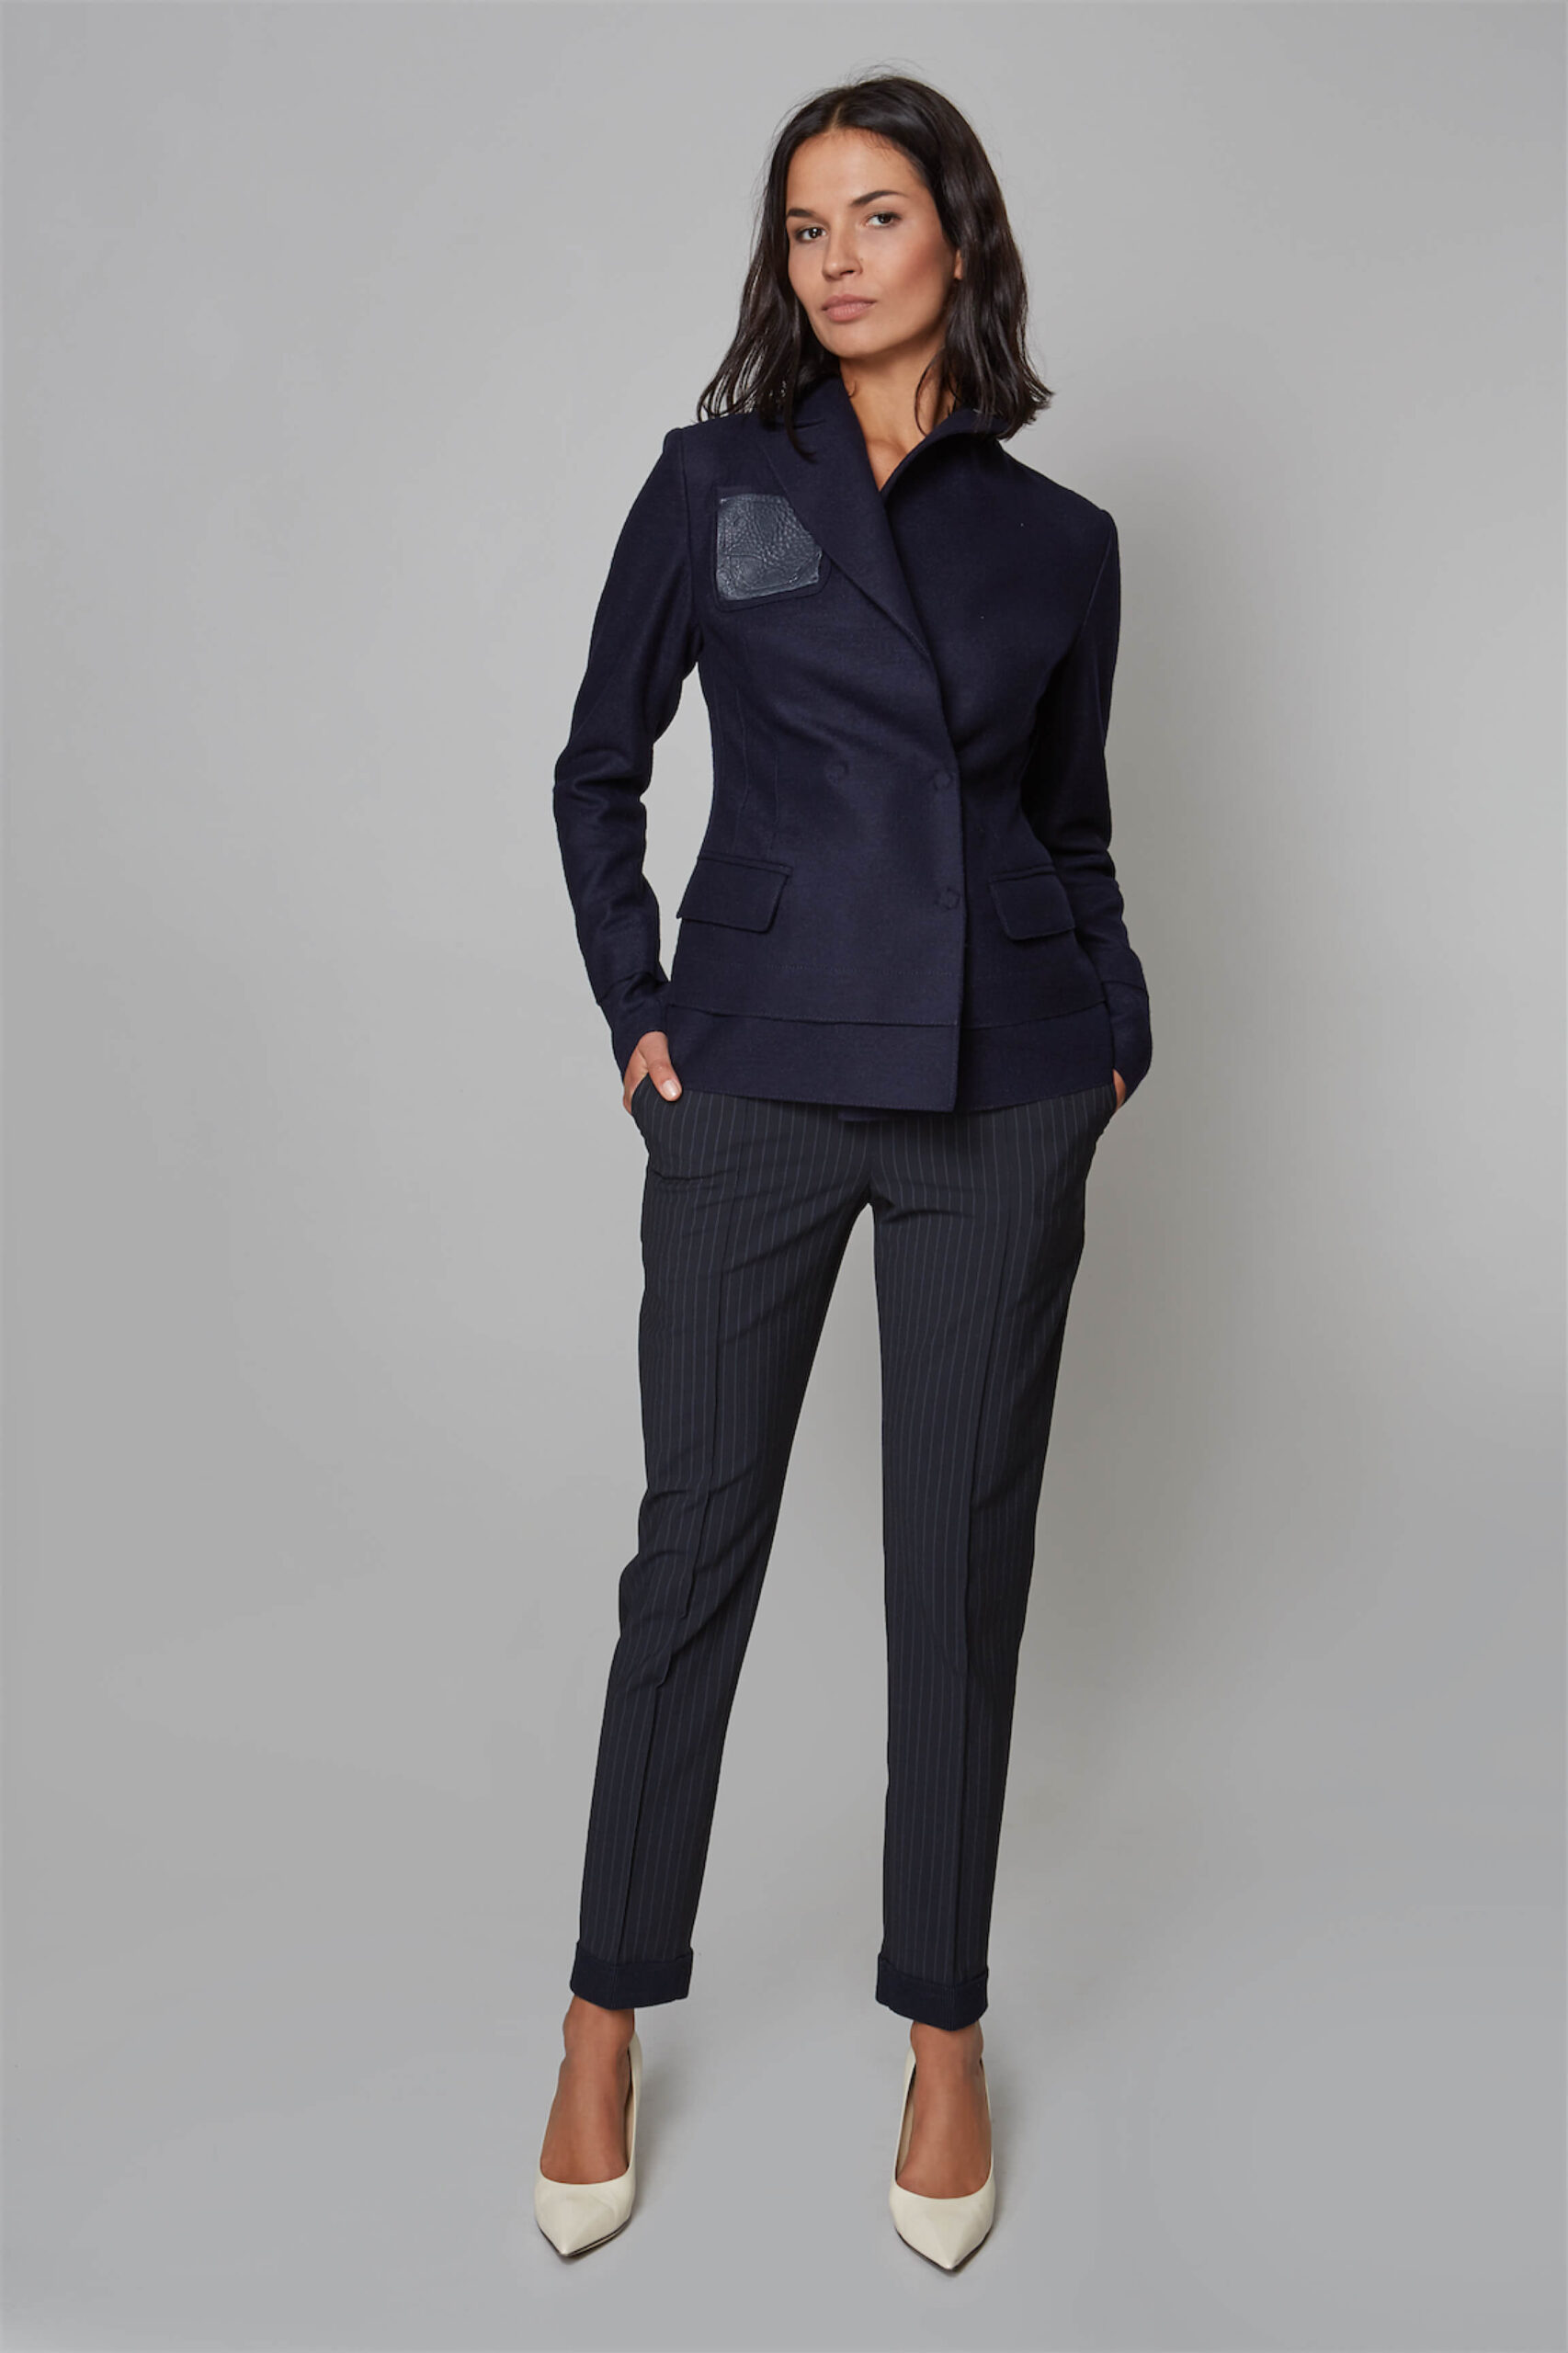 26 CHI JACKET 53 PSI TROUSERS